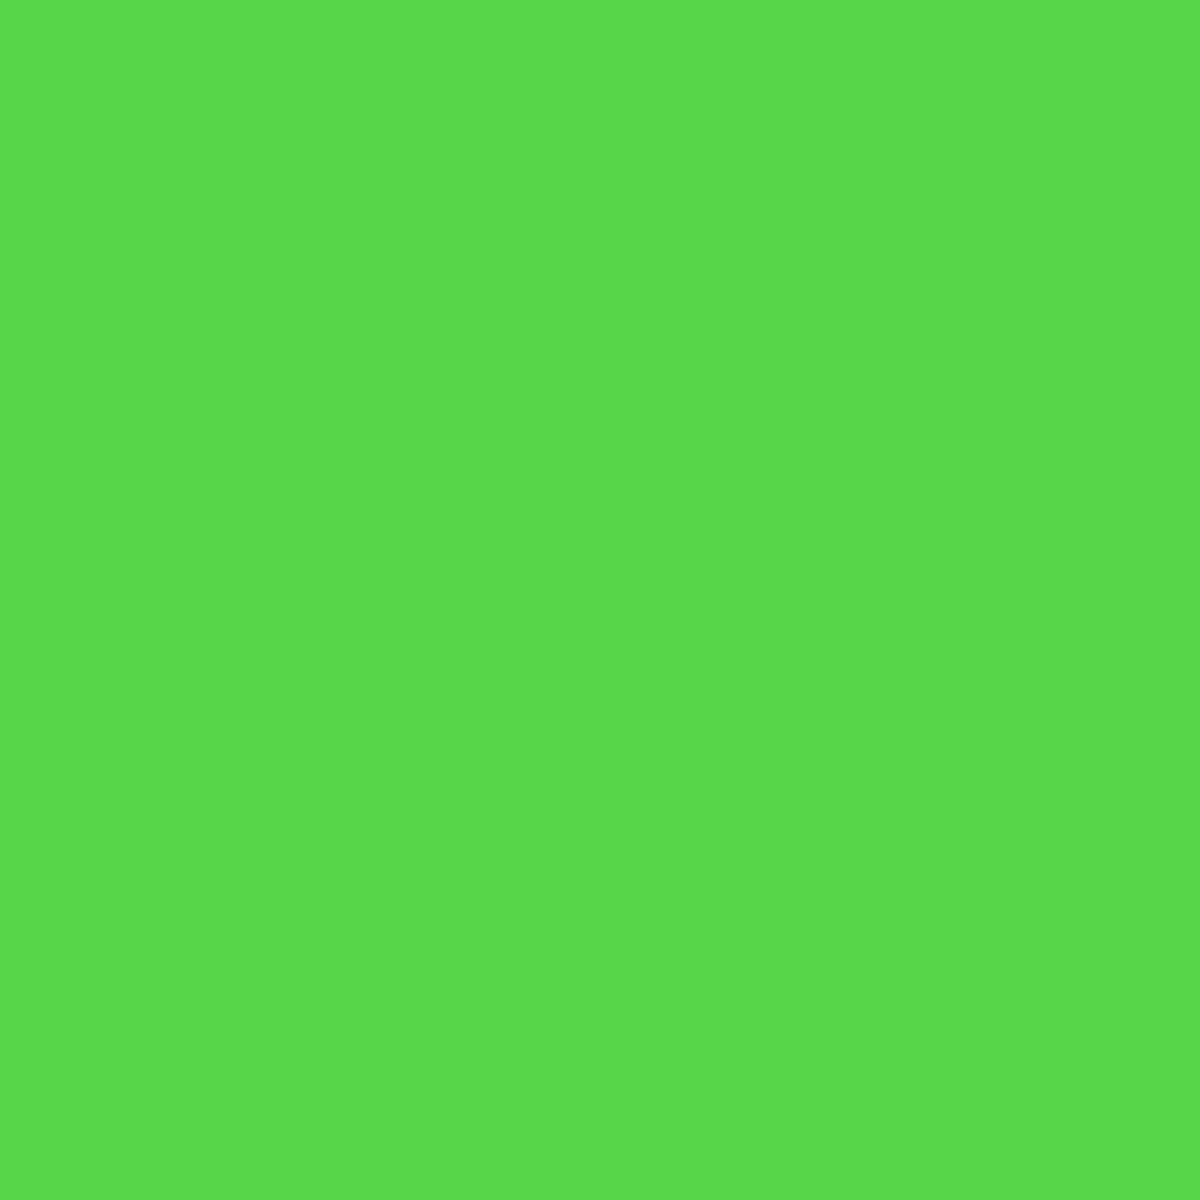 Prism Backdrop by Ravelli 10x20' Chromakey Green Muslin Photo Video Background, 100% Cotton, 150GSM Weight, Flocked on One Side, (9x18' after pre-shrinkage)